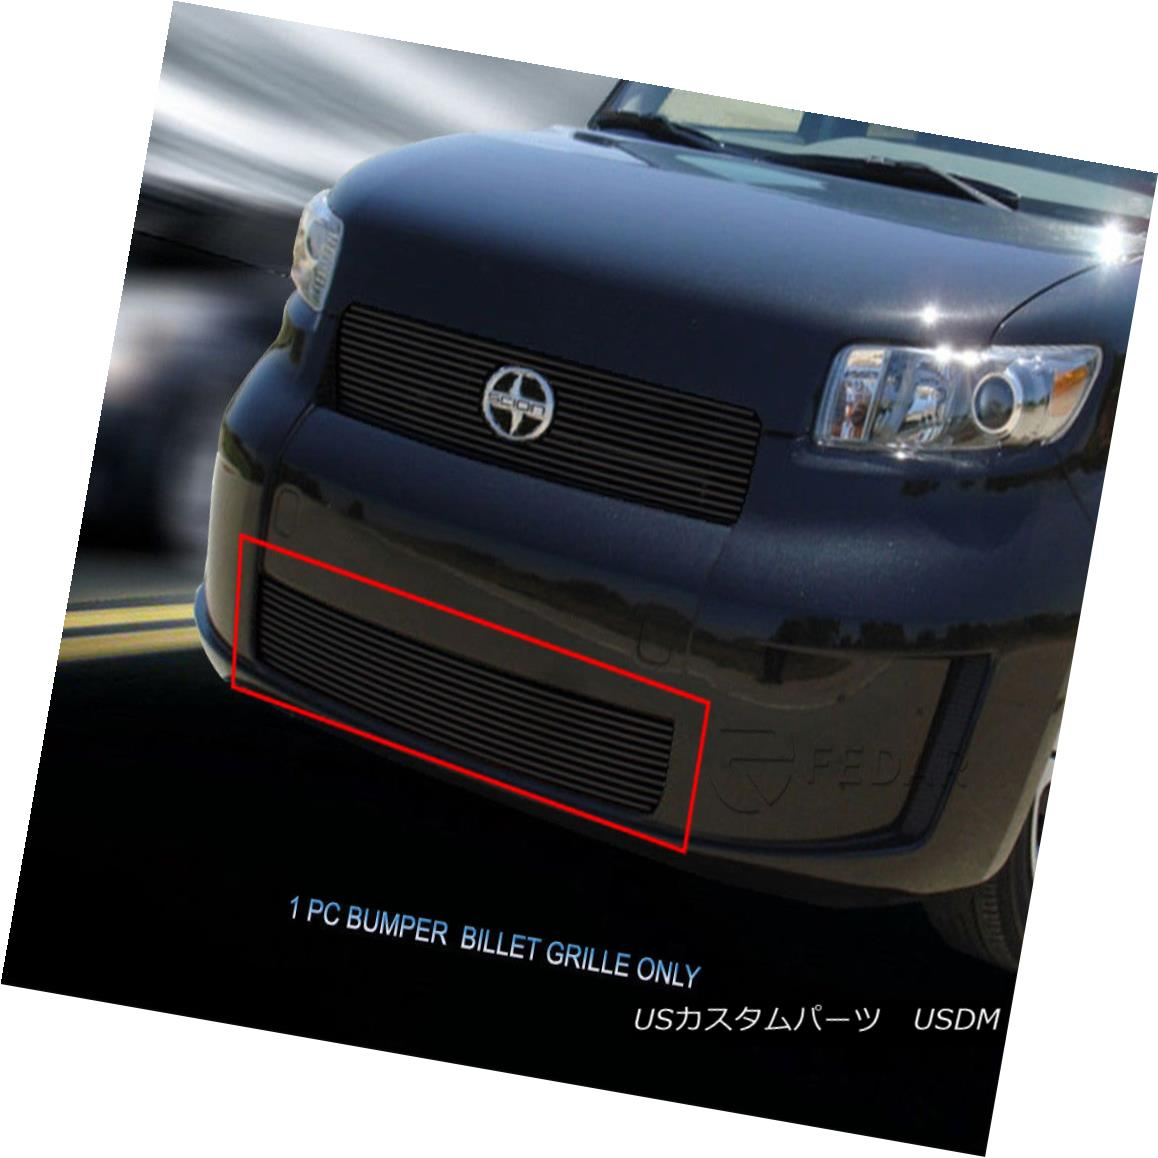 グリル For 08-10 Scion XB Black Bolt-On Billet Grille Main Bumper Grill Insert Fedar 08-10 Scion XB Black Bolt-OnビレットグリルメインバンパーグリルインサートFedar